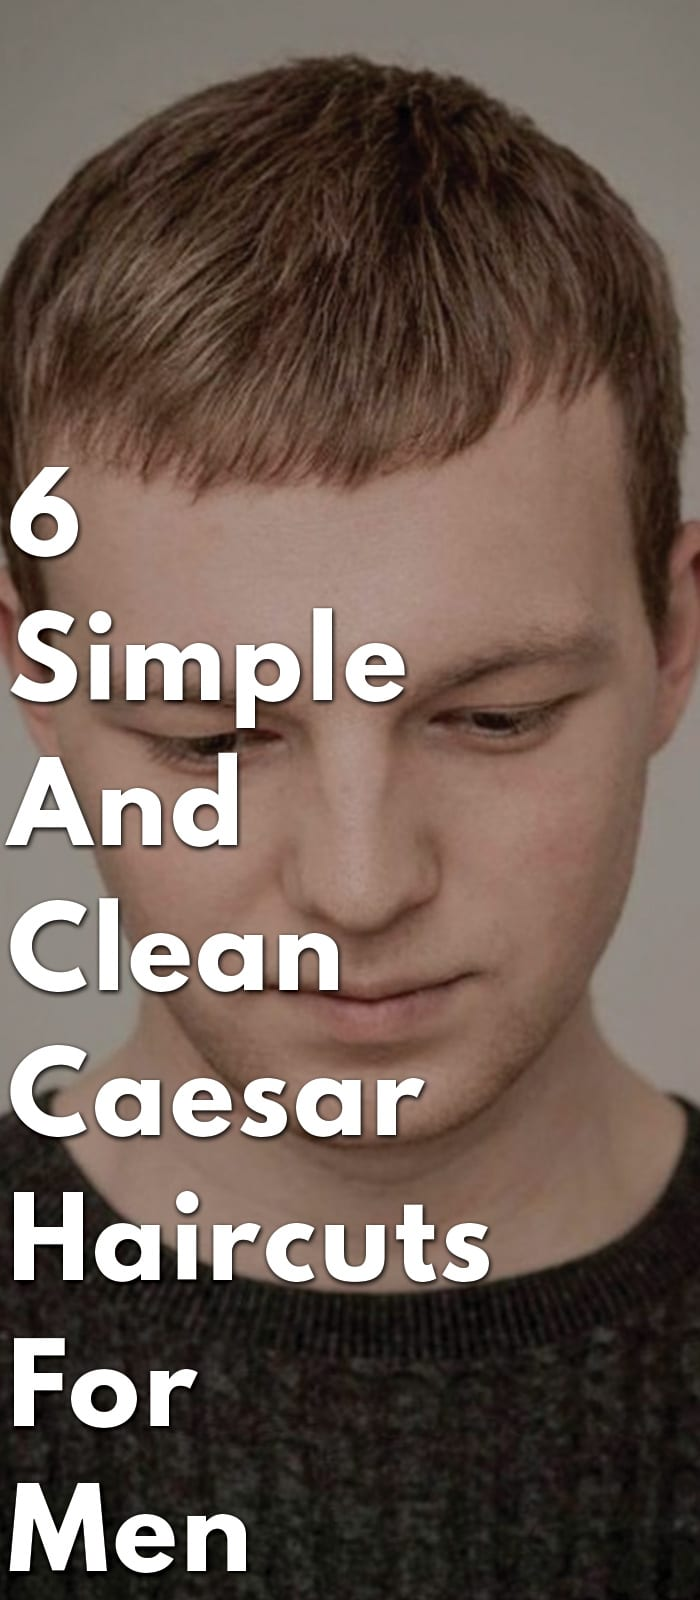 6-Simple-And-Clean-Caesar-Haircuts-For-Men